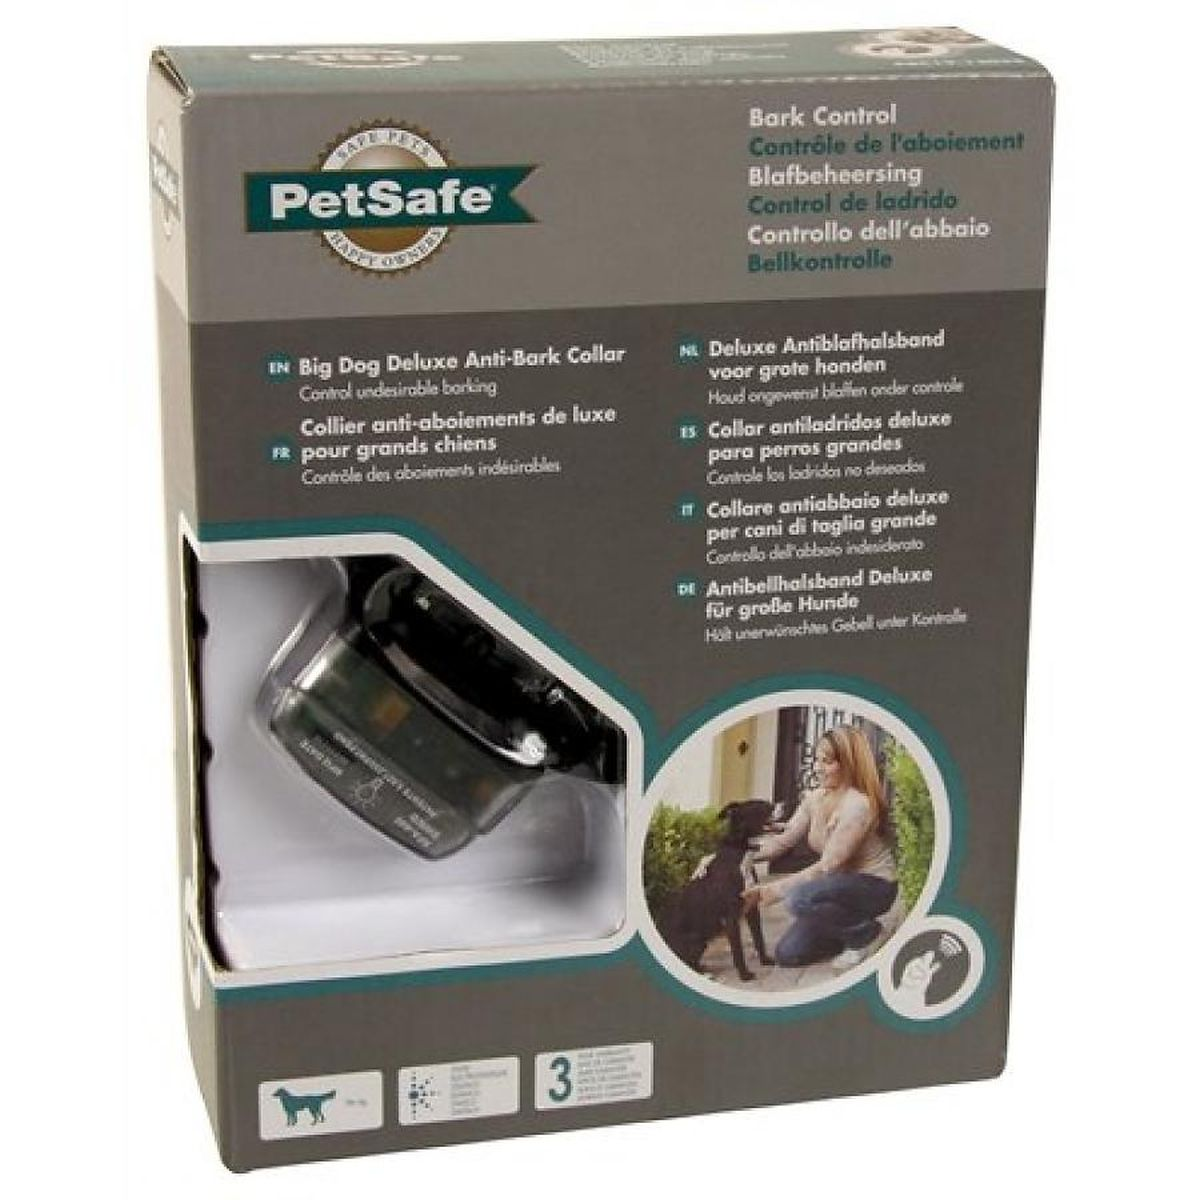 Petsafe blafband deluxe voor grote honden